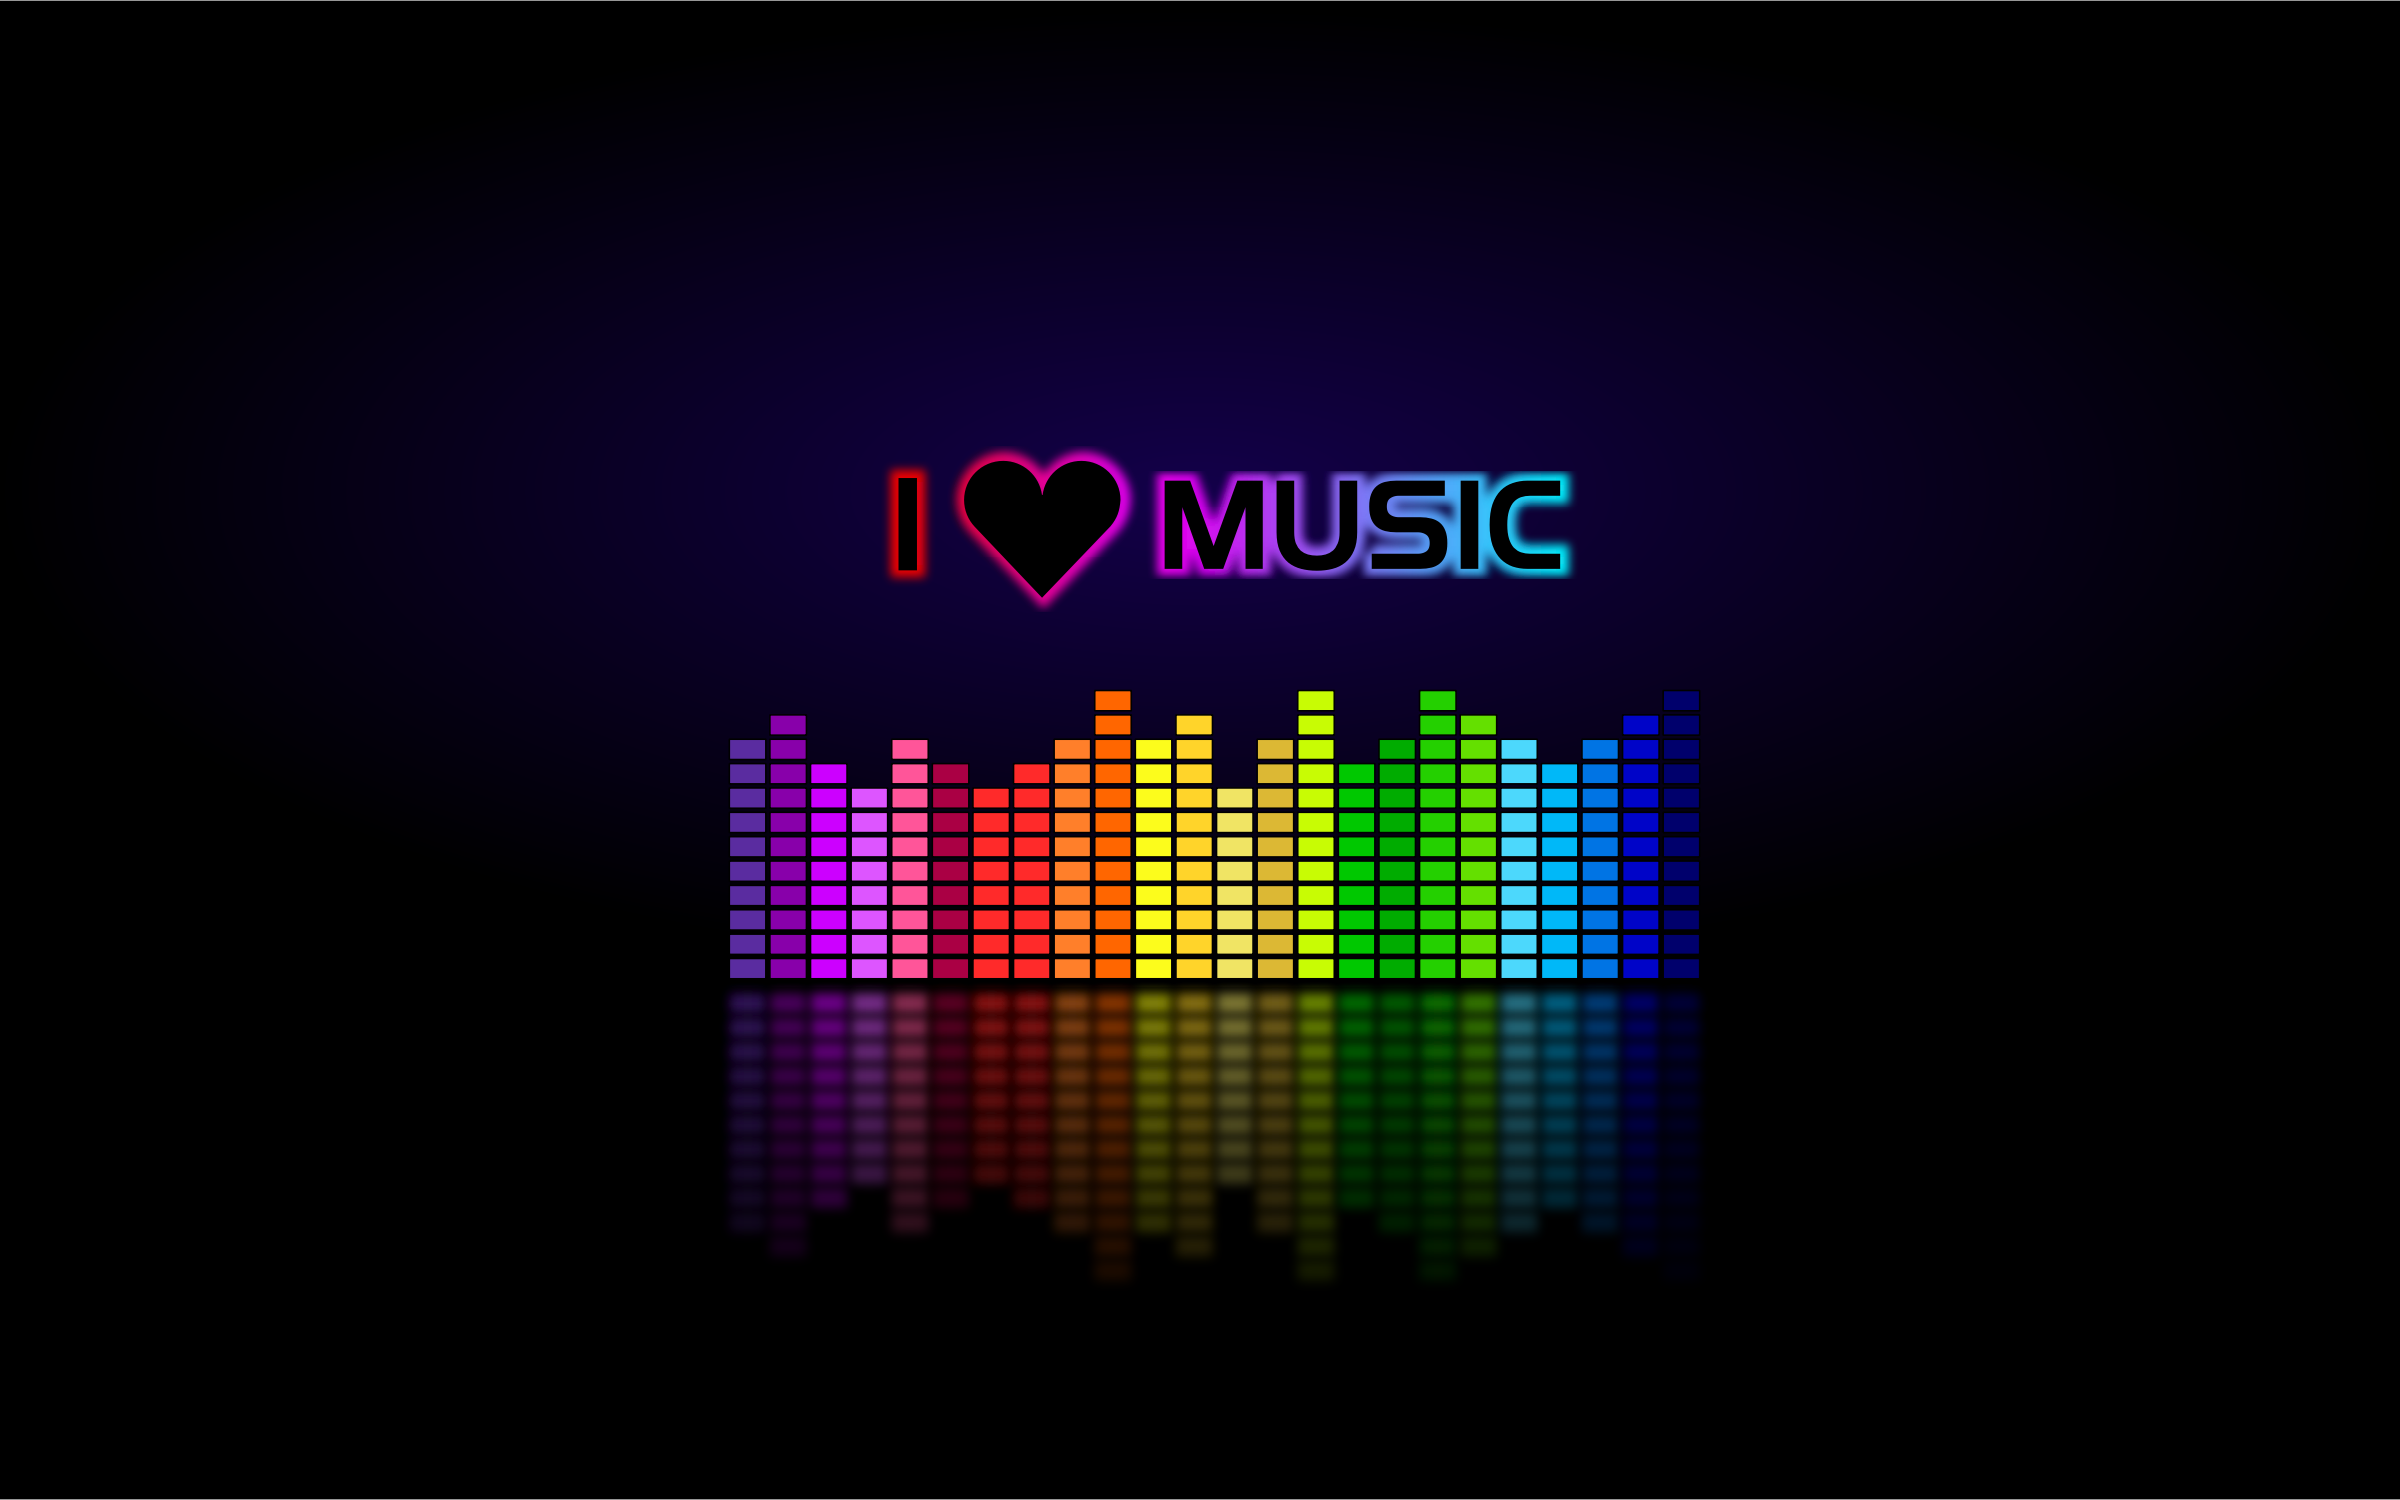 Love Music Colorful Black Wallpaper Images Hd Free 2392202 Music Wallpaper Music Backgrounds Best Workout Songs